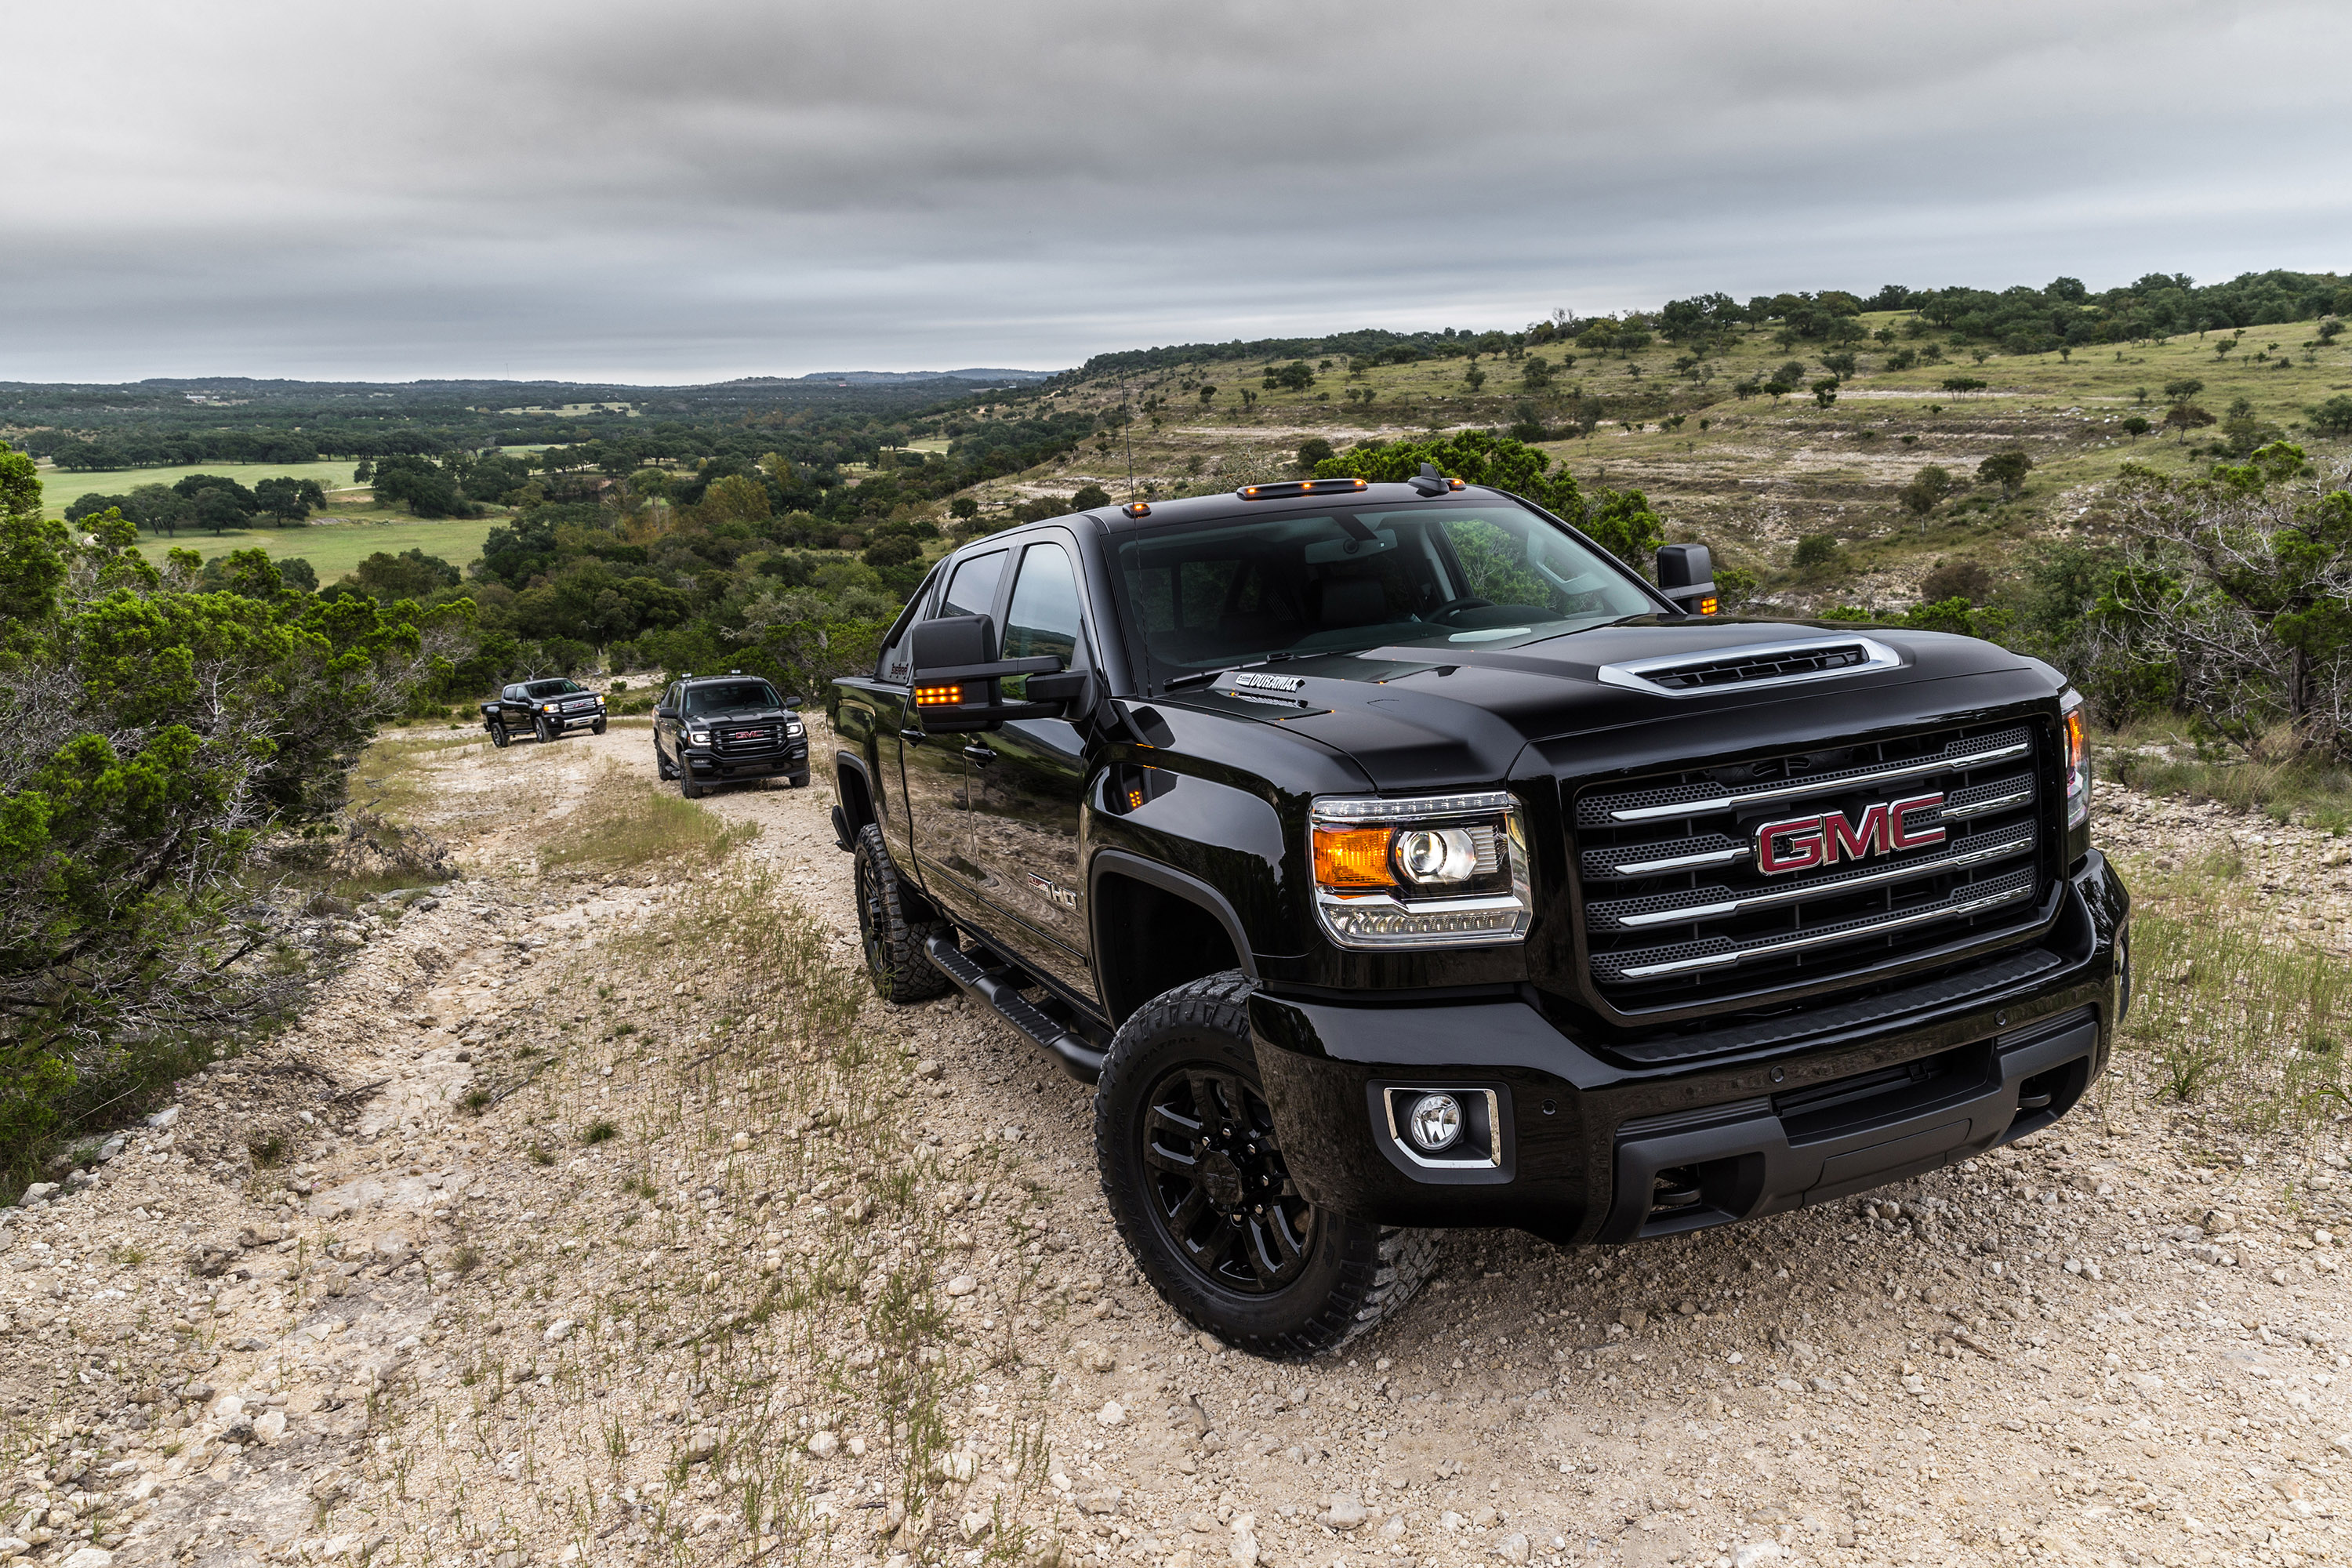 2017 Gmc Sierra Hd All Terrain X Limited Edition 3 Of 13